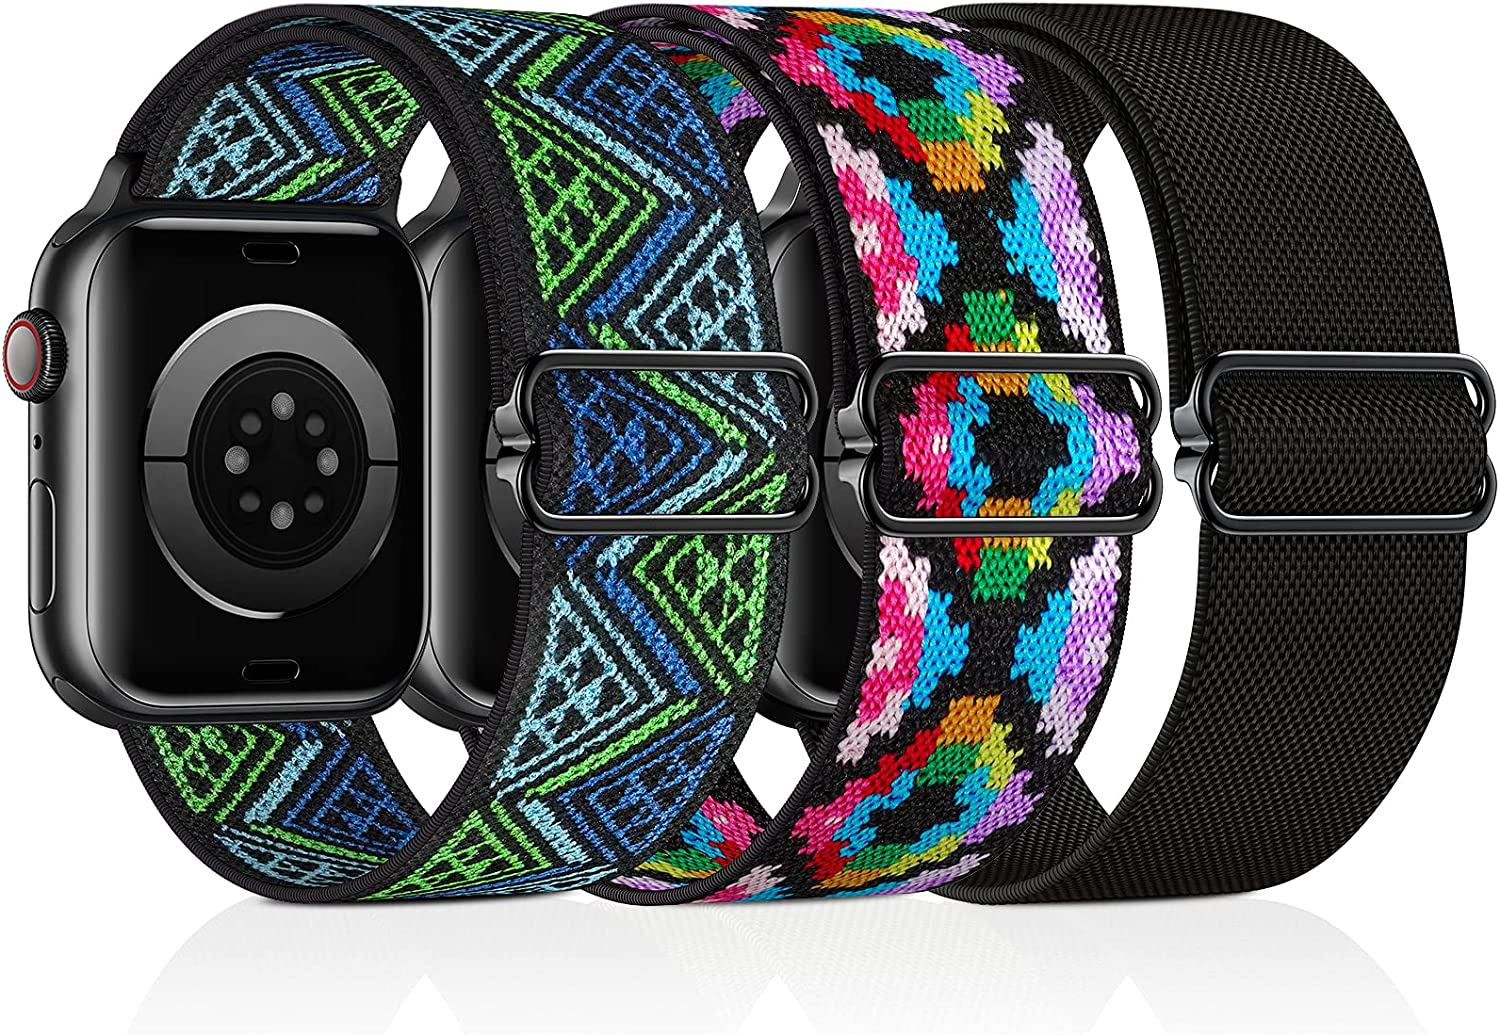 ALTOUMAN Stretchy Nylon Solo Loop Bands Compatible with Apple Watch 38mm 40mm 41mm 42mm 44mm 45mm, Adjustable Braided Sport Elastic Straps Women Men Wristbands Compatible with iWatch Series 7/6/5/4/3/2/1 SE, 3 Packs